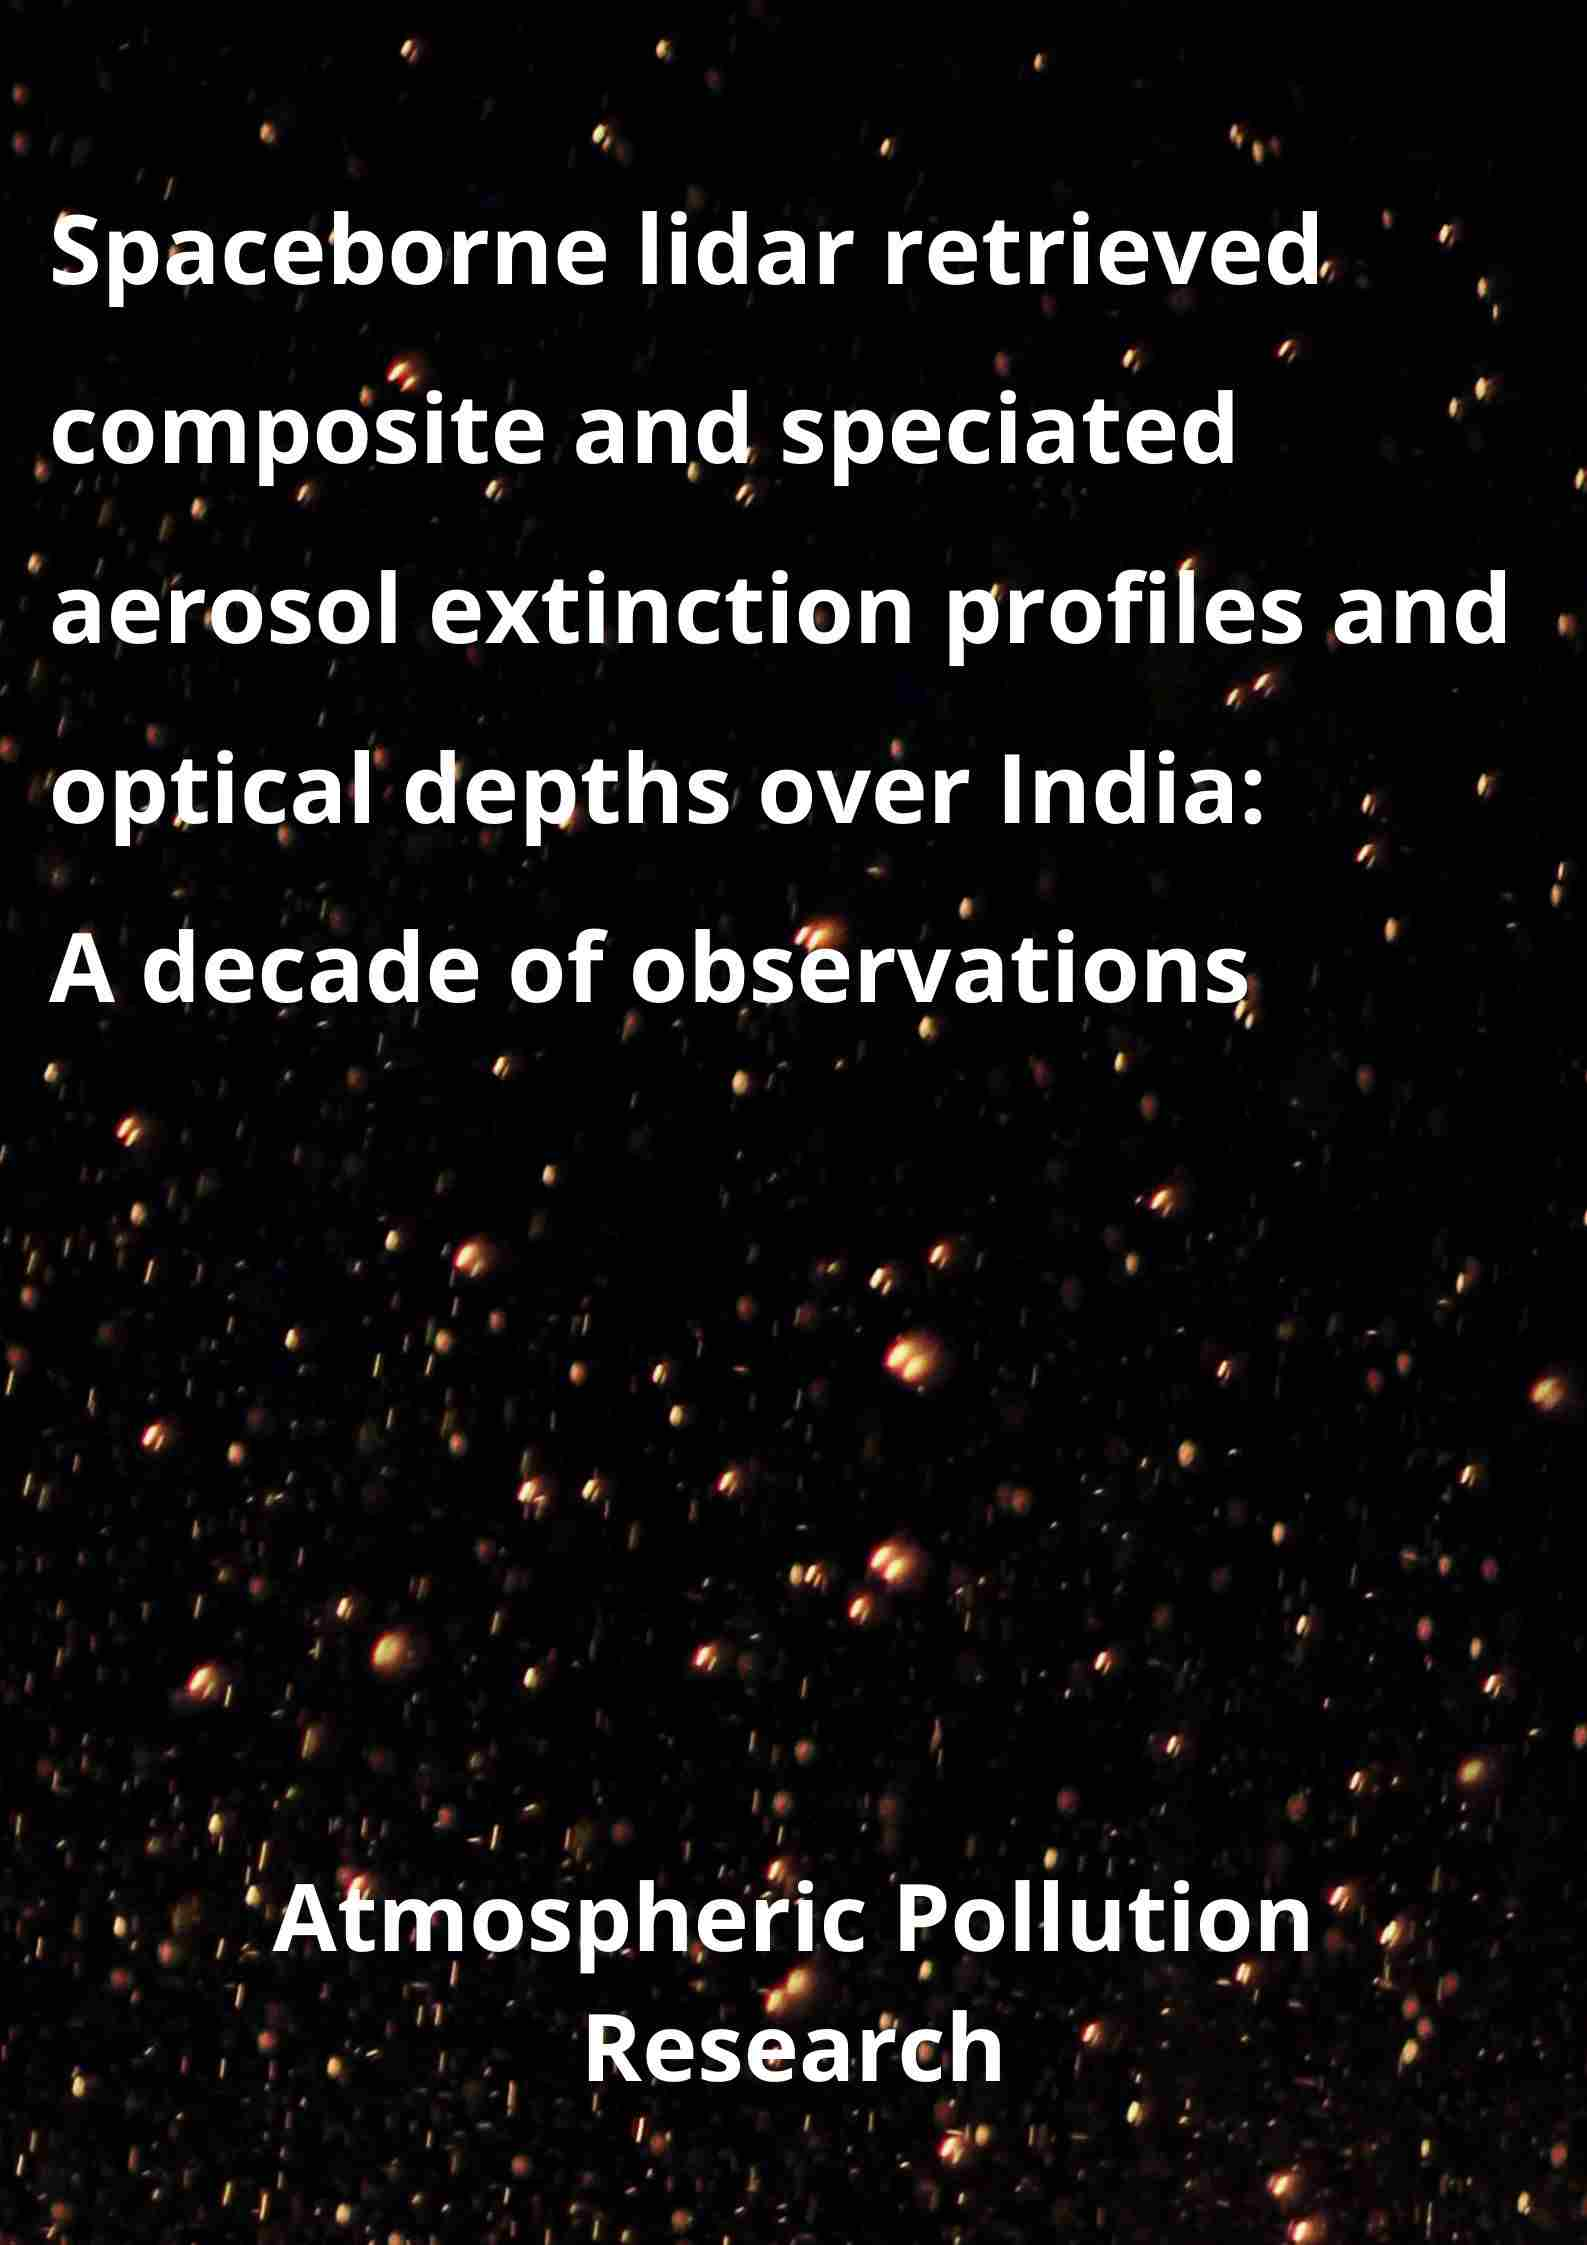 Spaceborne lidar retrieved composite & speciated aerosol extinction profiles & optical depths over India: A decade of observations